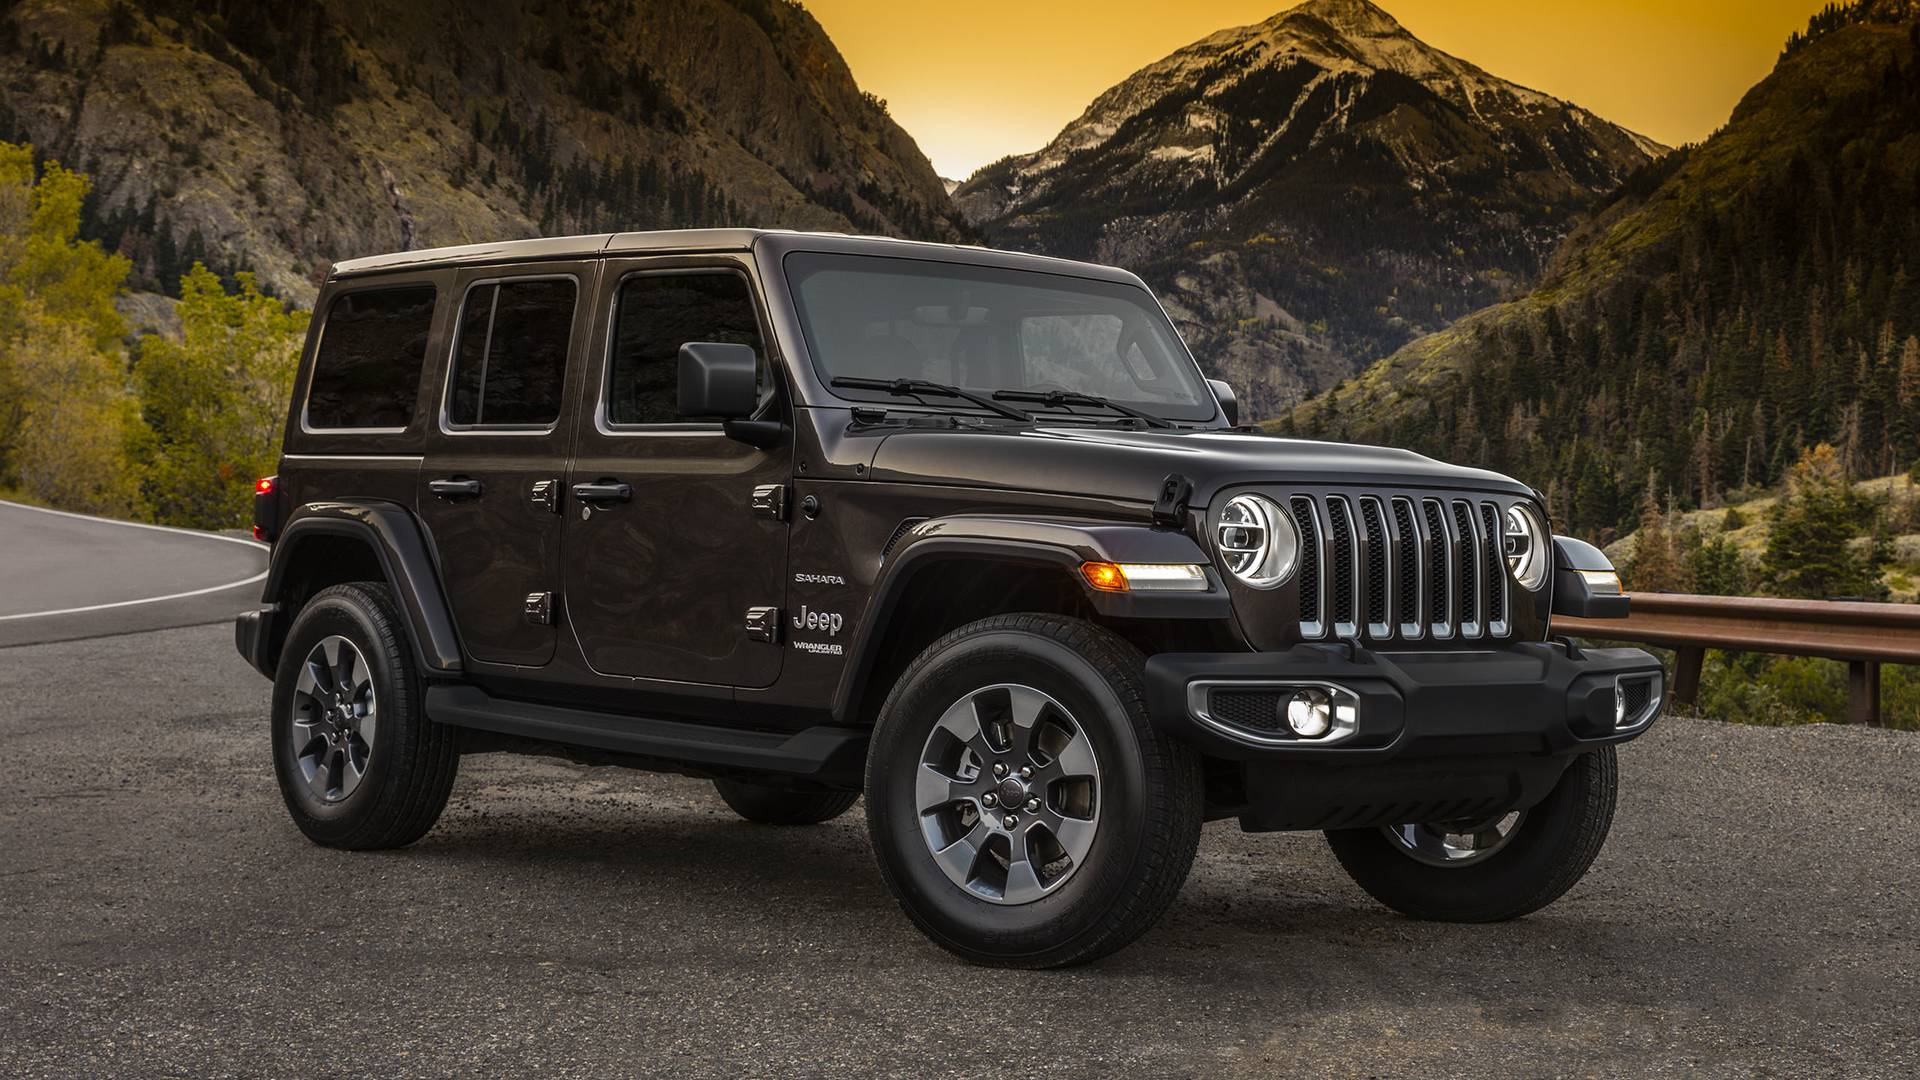 68 A 2020 Jeep Wrangler Diesel Style